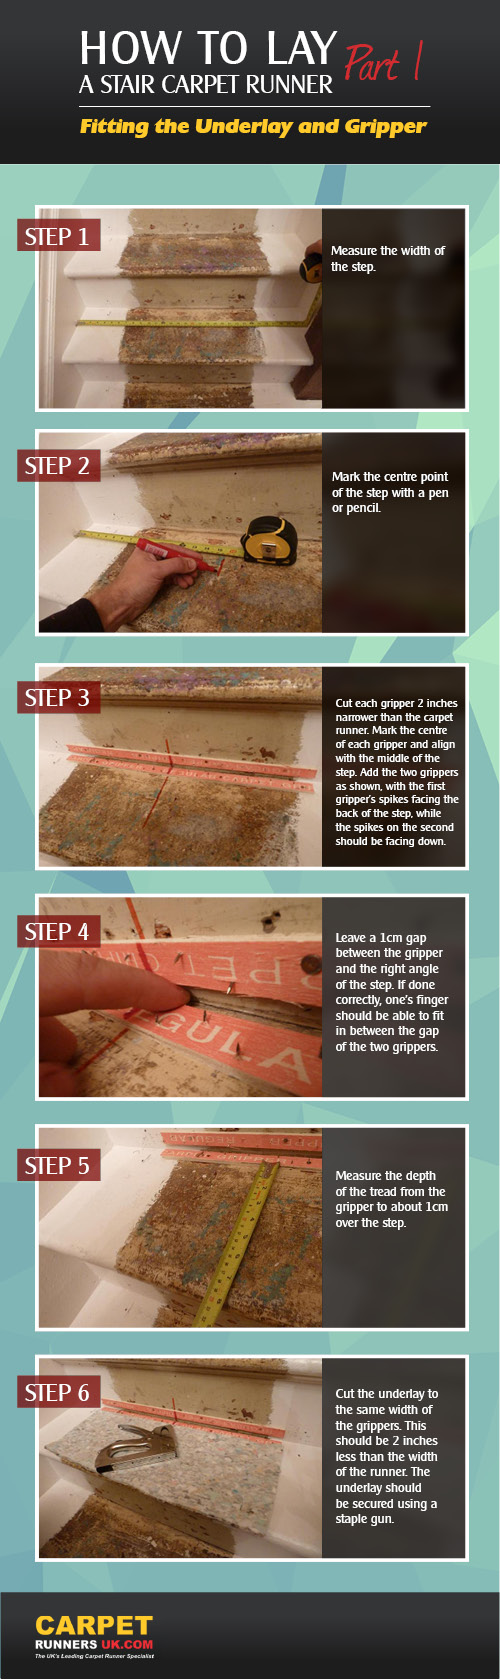 How to Lay Underlay